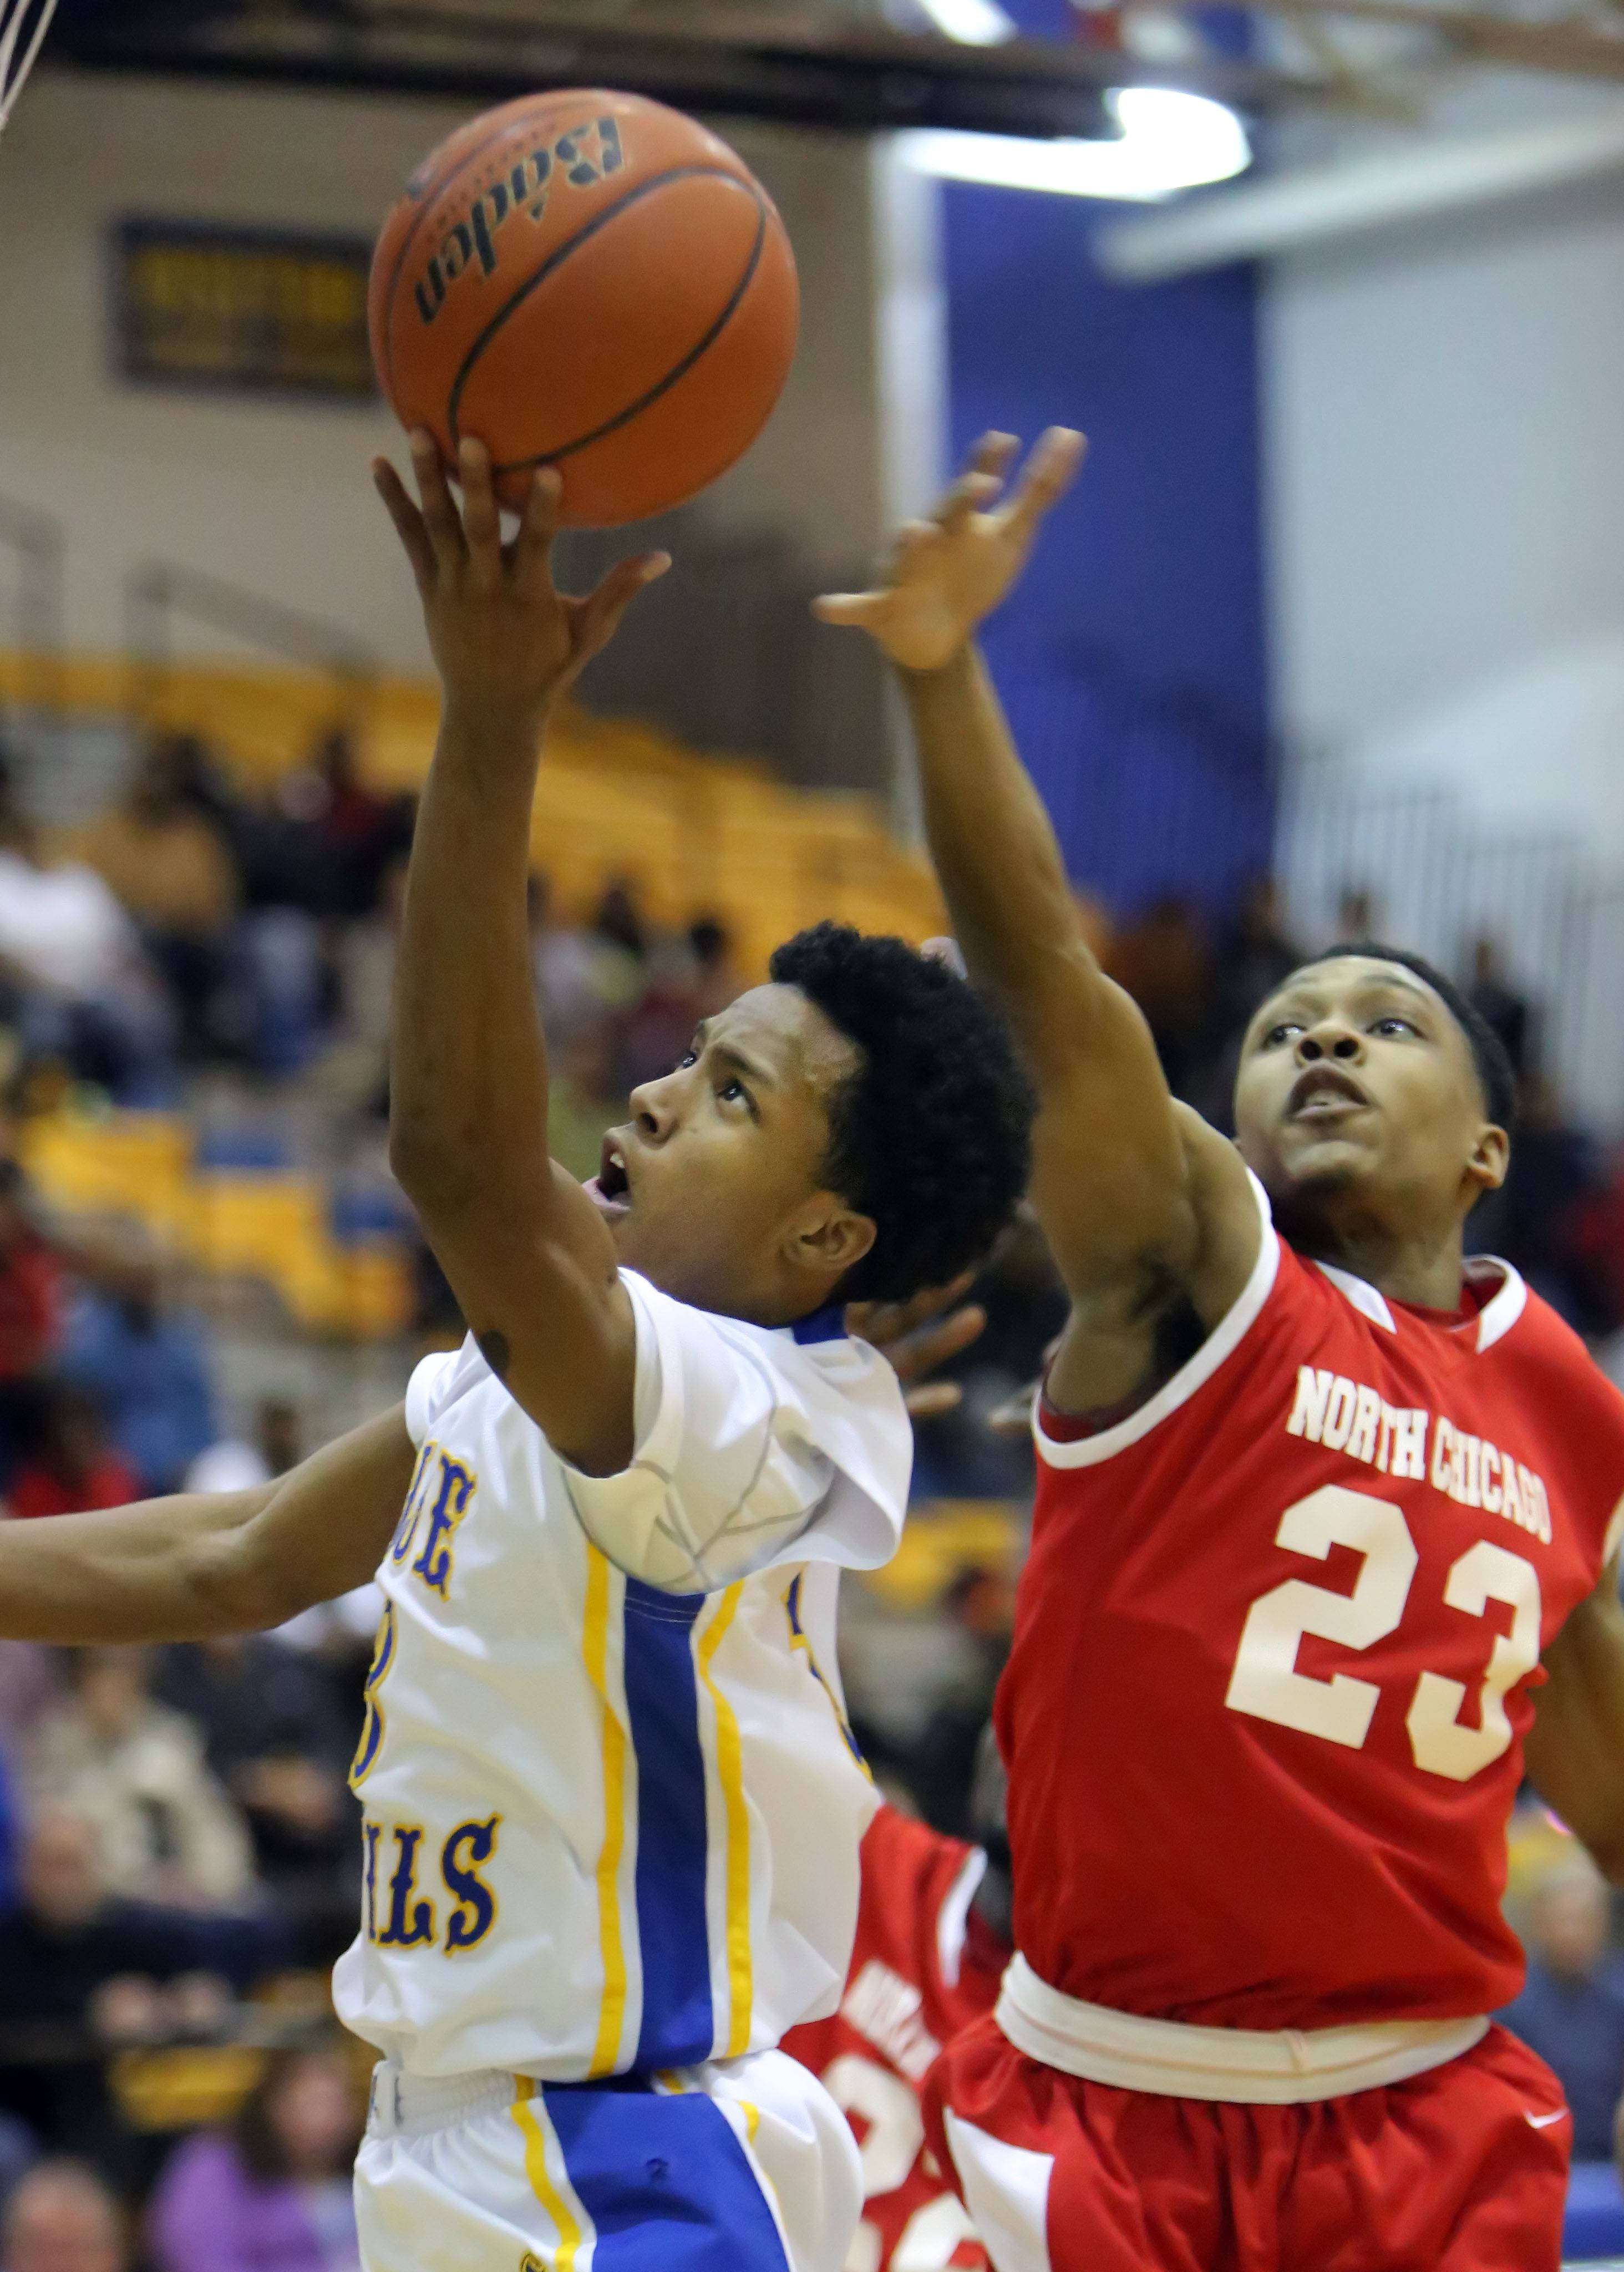 Warren's Eric Gillespie, left, drives past North Chicago's Jamero Shelton on Tuesday night at Warren.